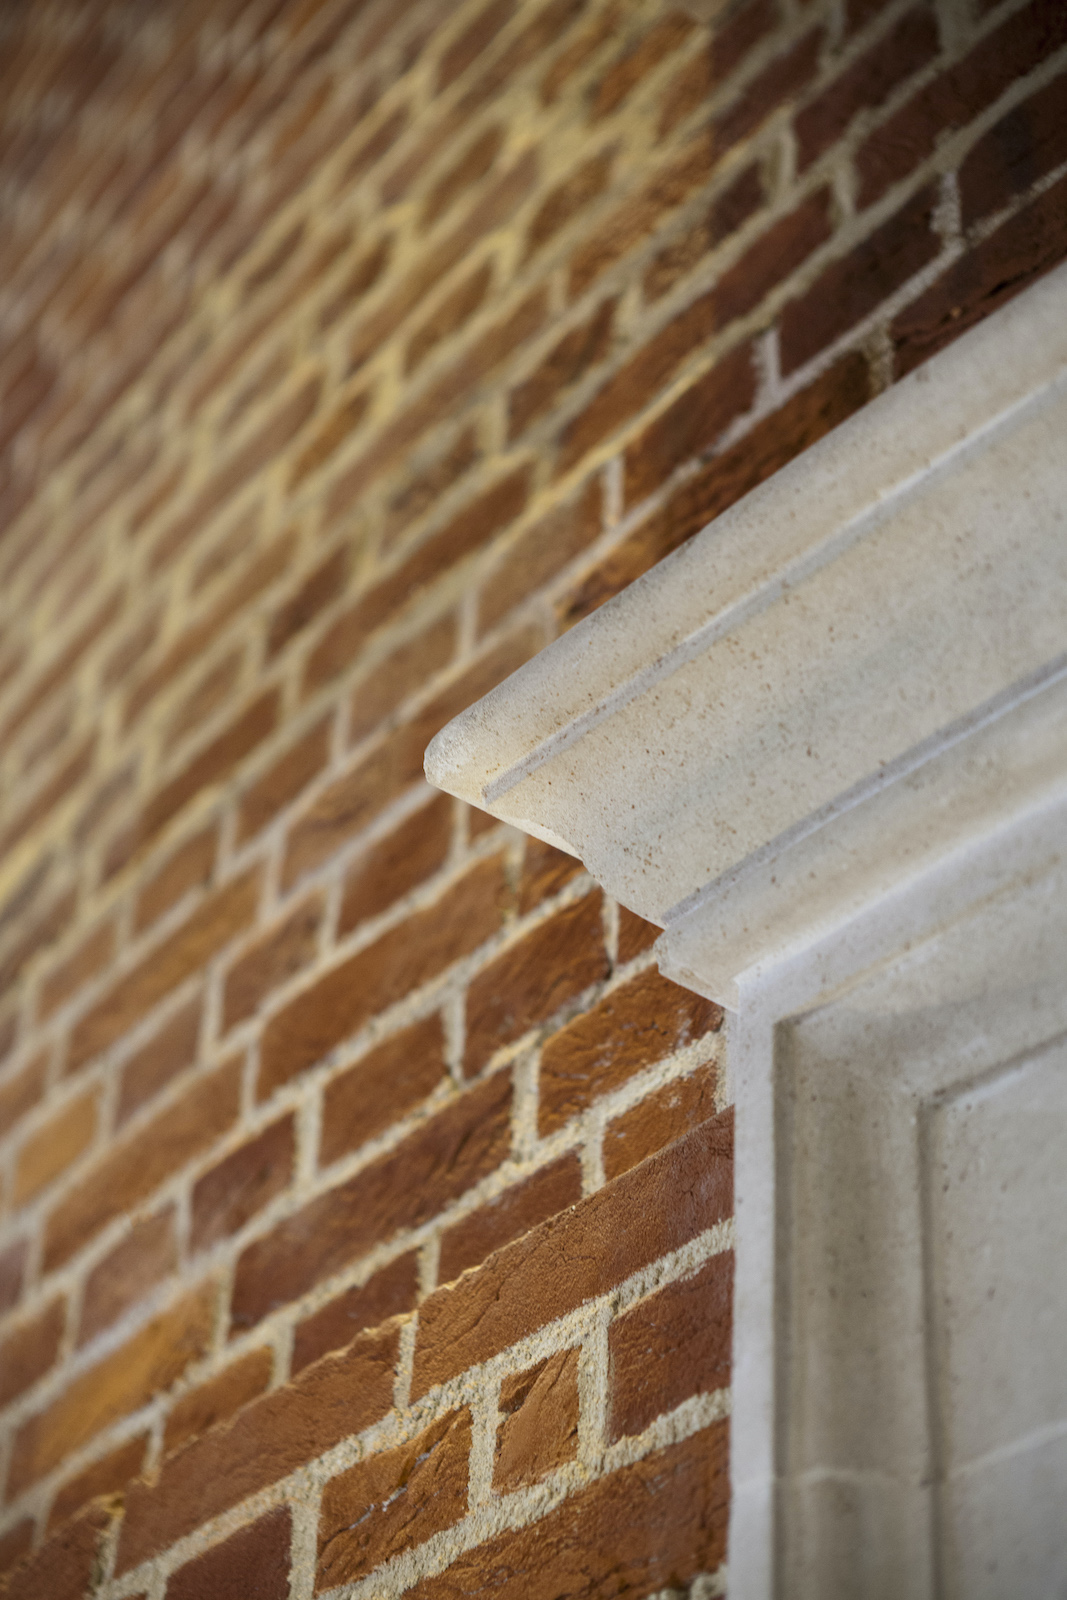 Details of a white door frame against a brick building